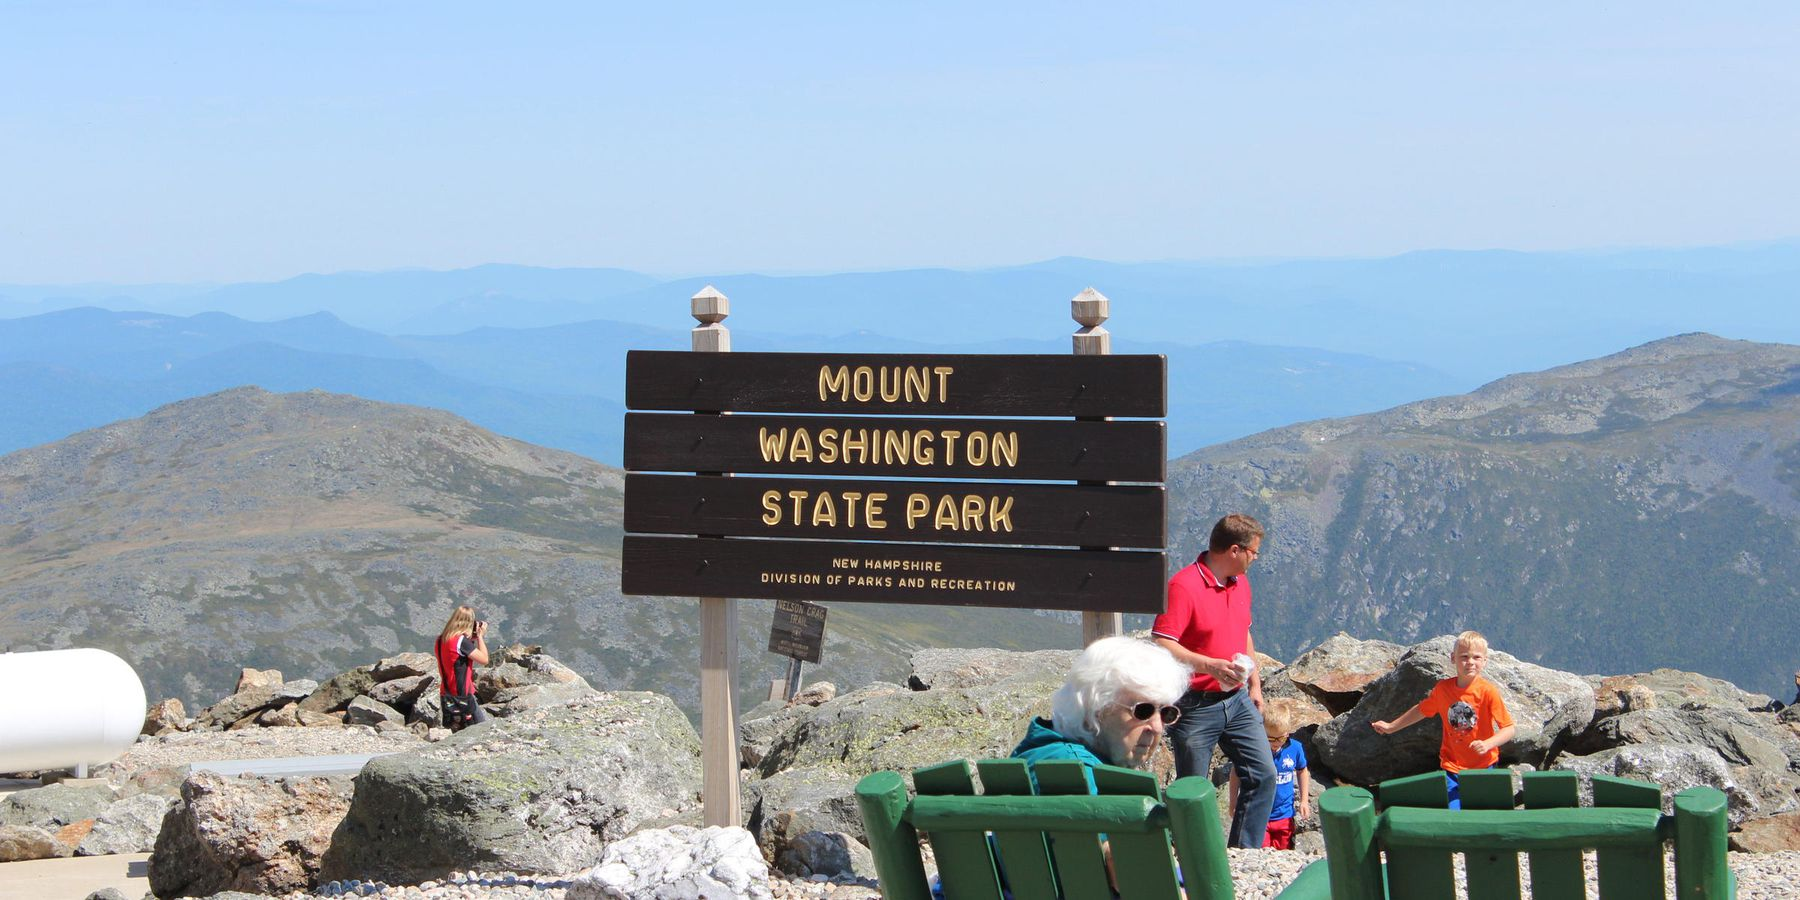 Mount Washington State Park - New Hampshire - Amerika - Doets Reizen